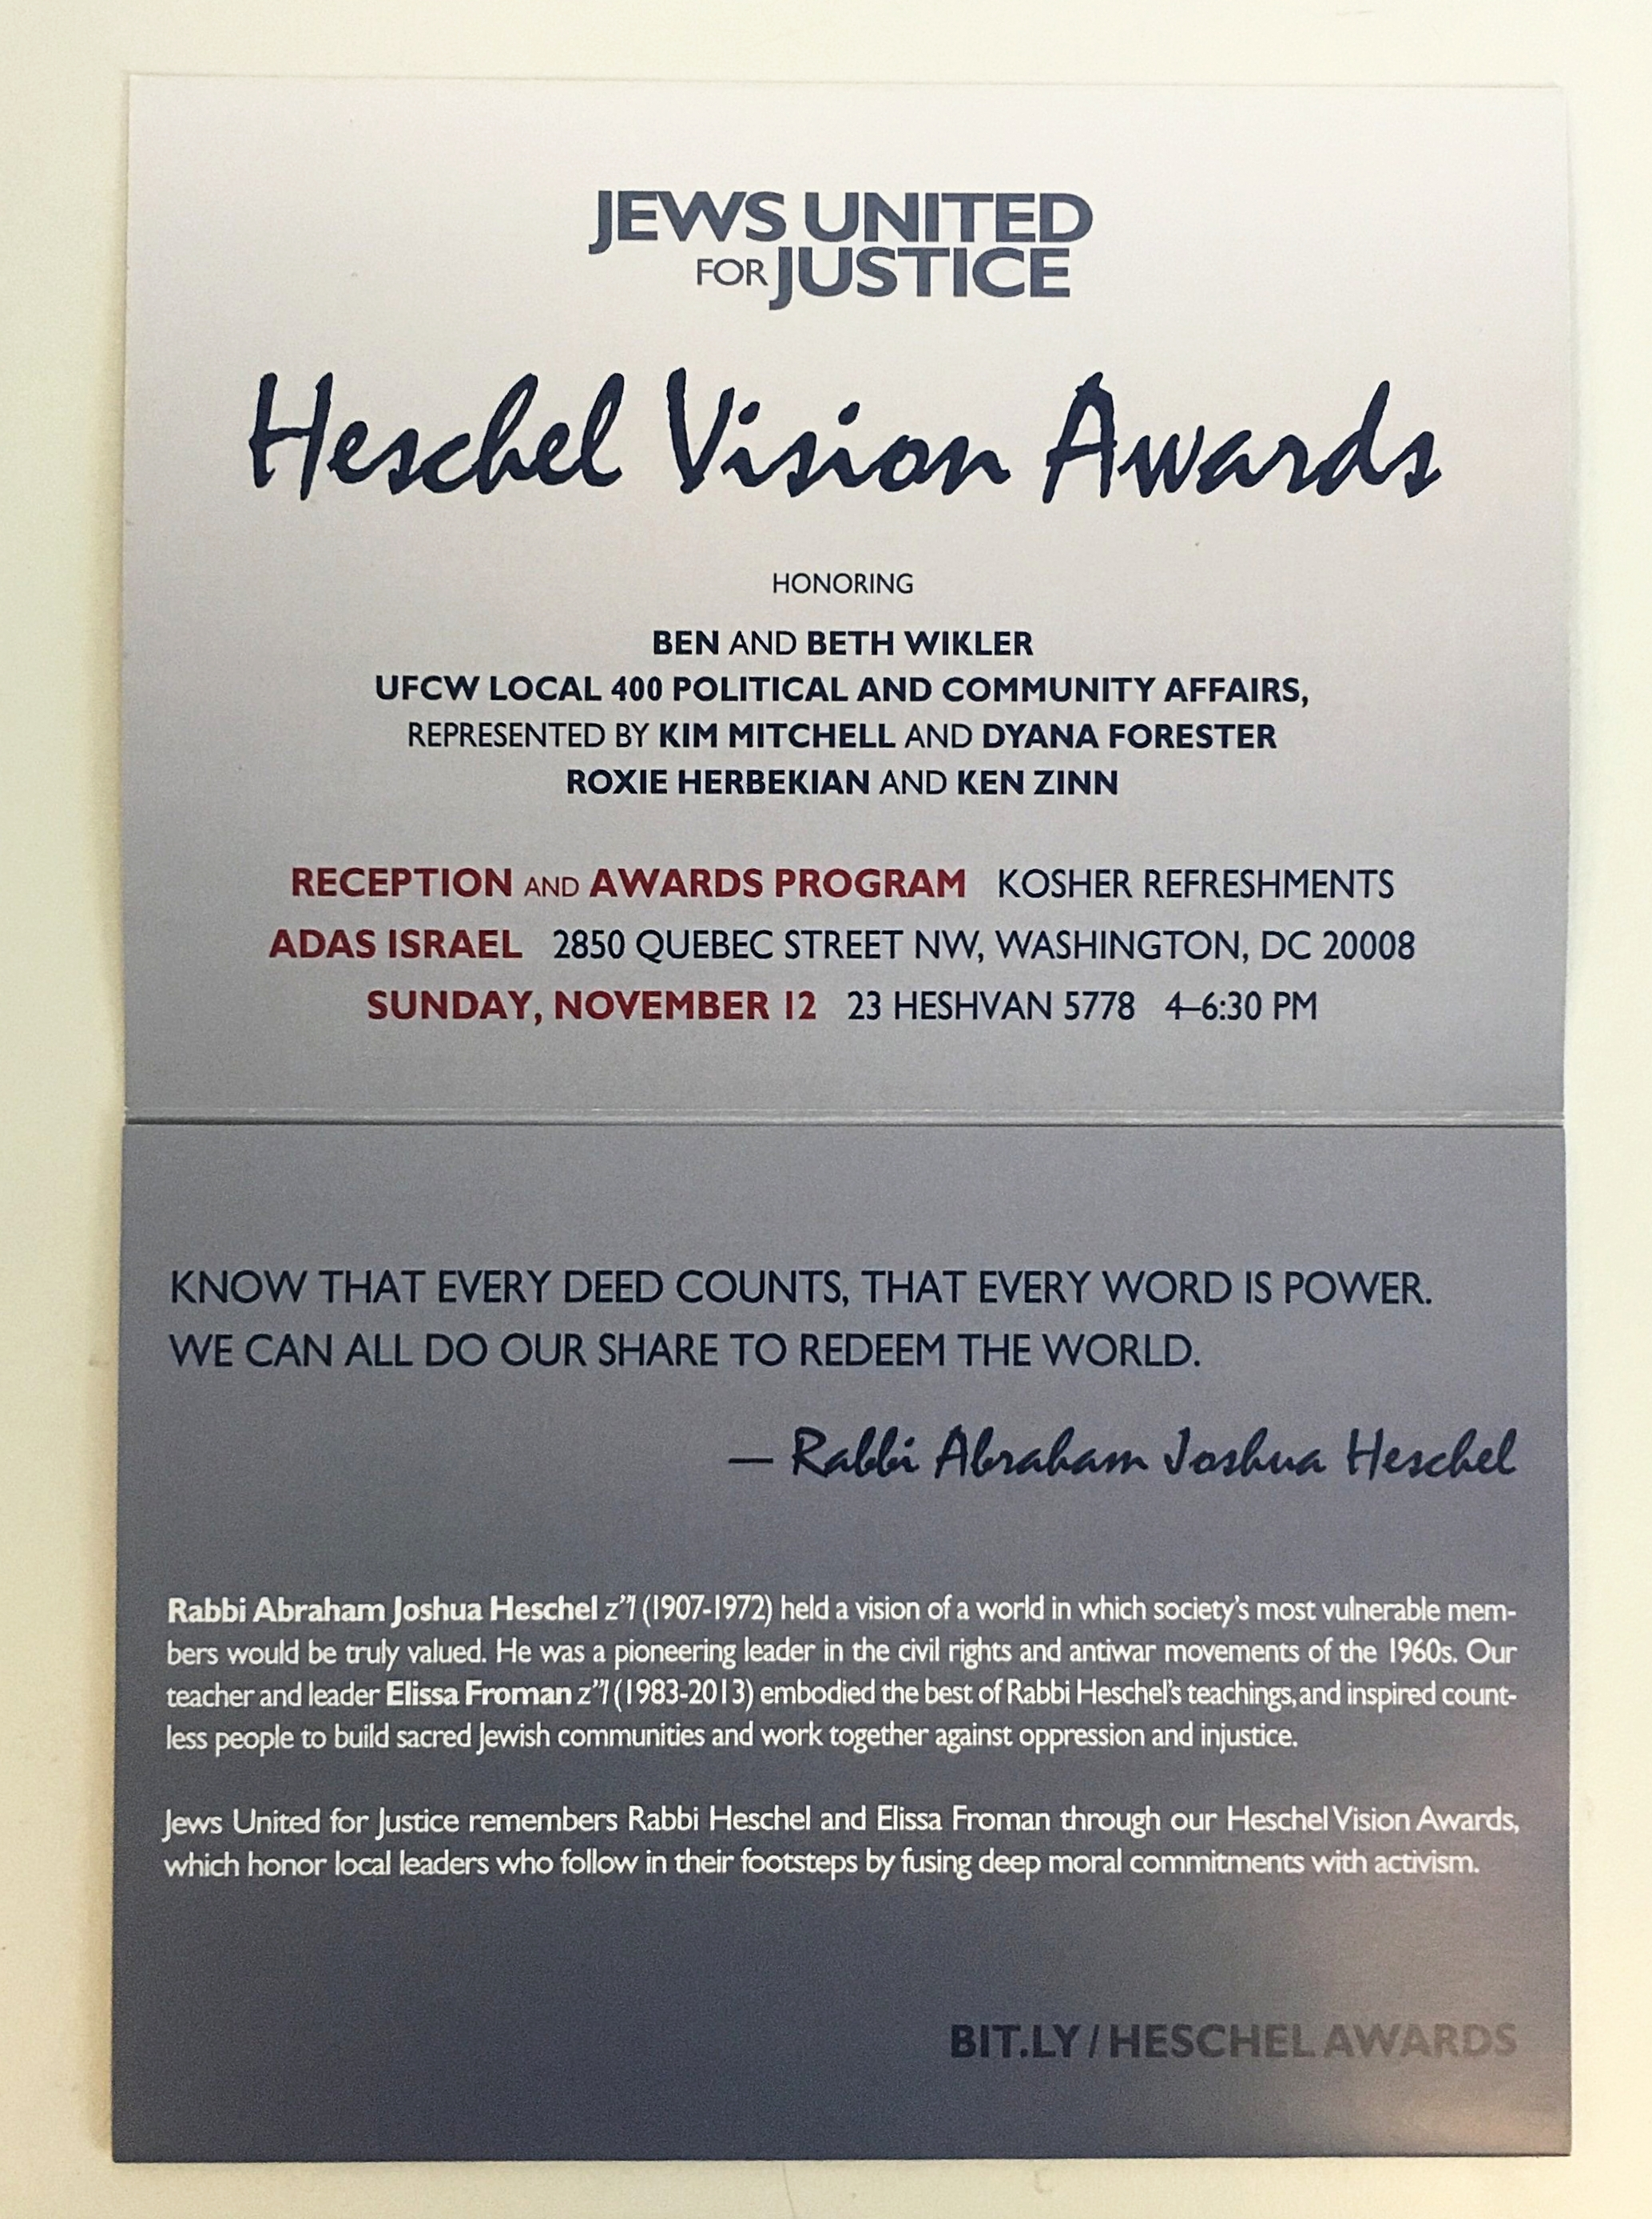 Heschel Vision Awards 2017 - Invitation - Interior 1